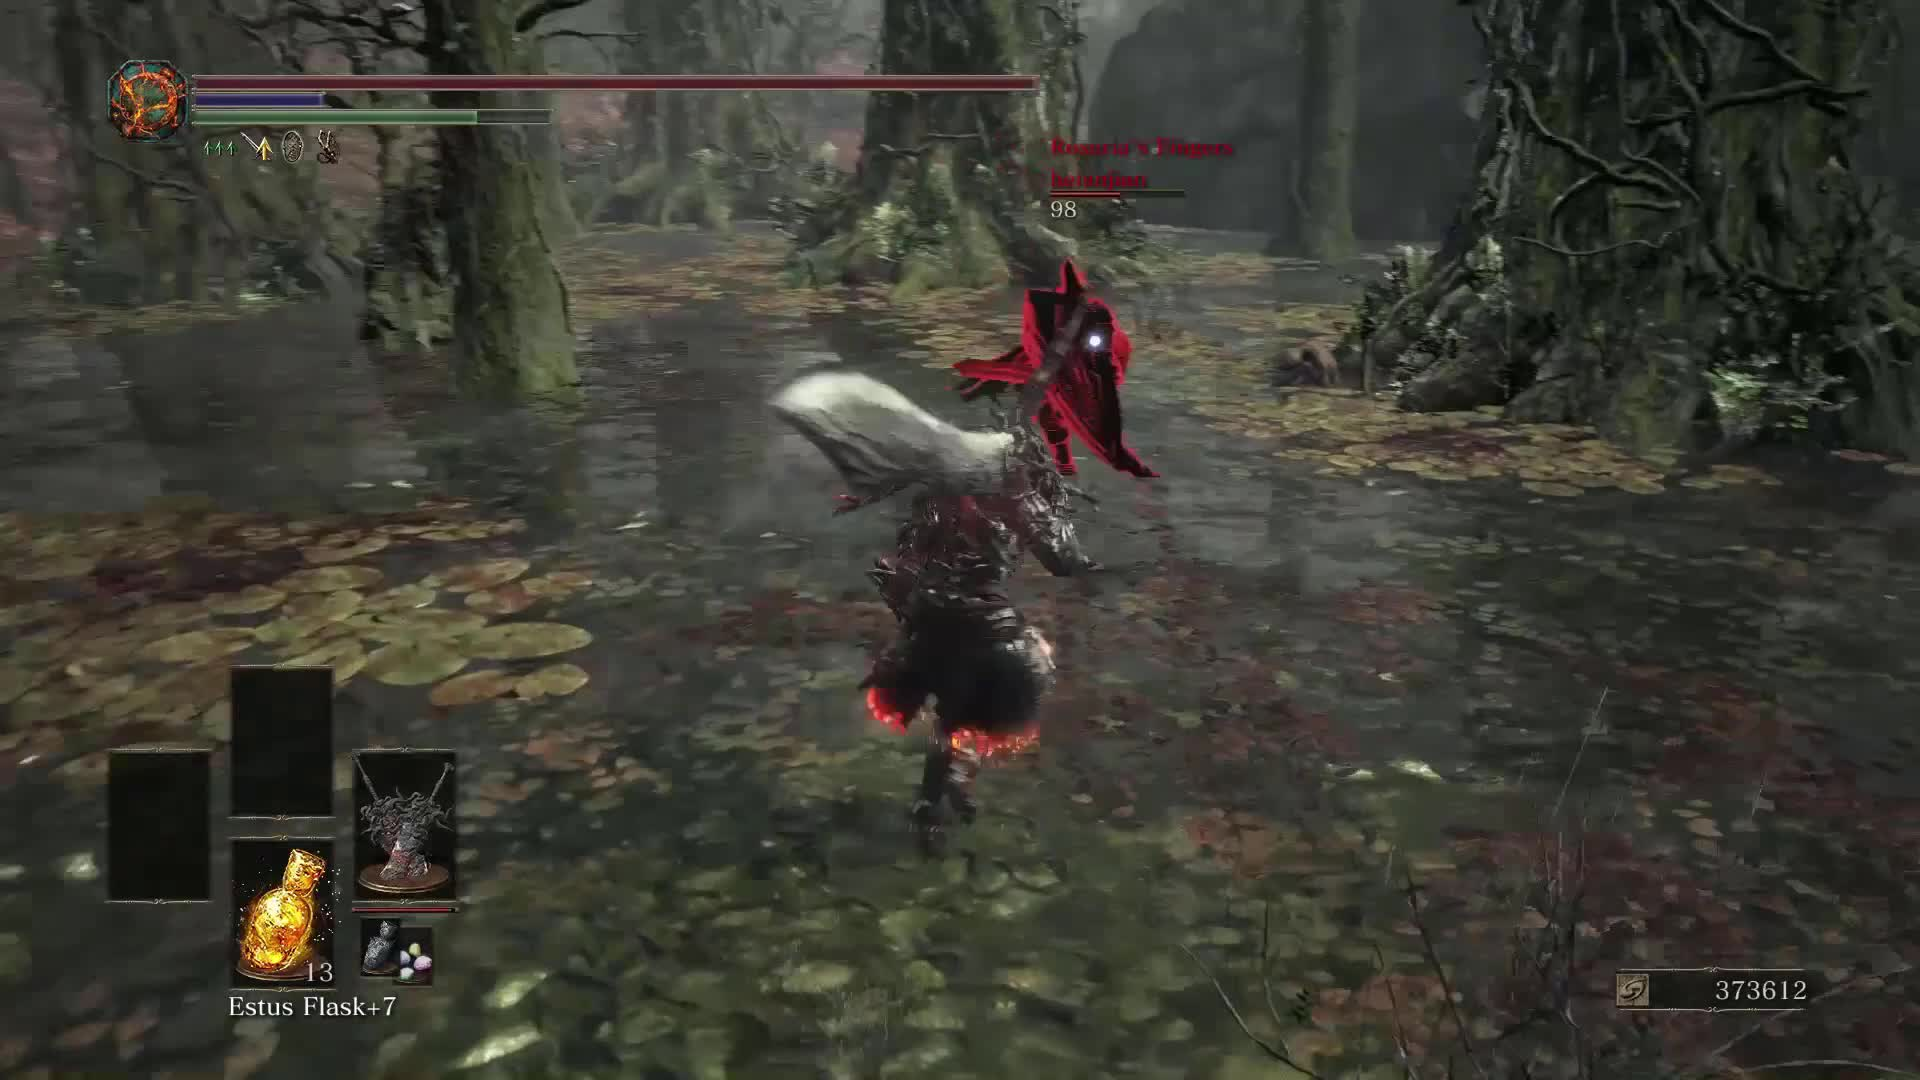 darksouls3, pvp, paired greatswords GIFs